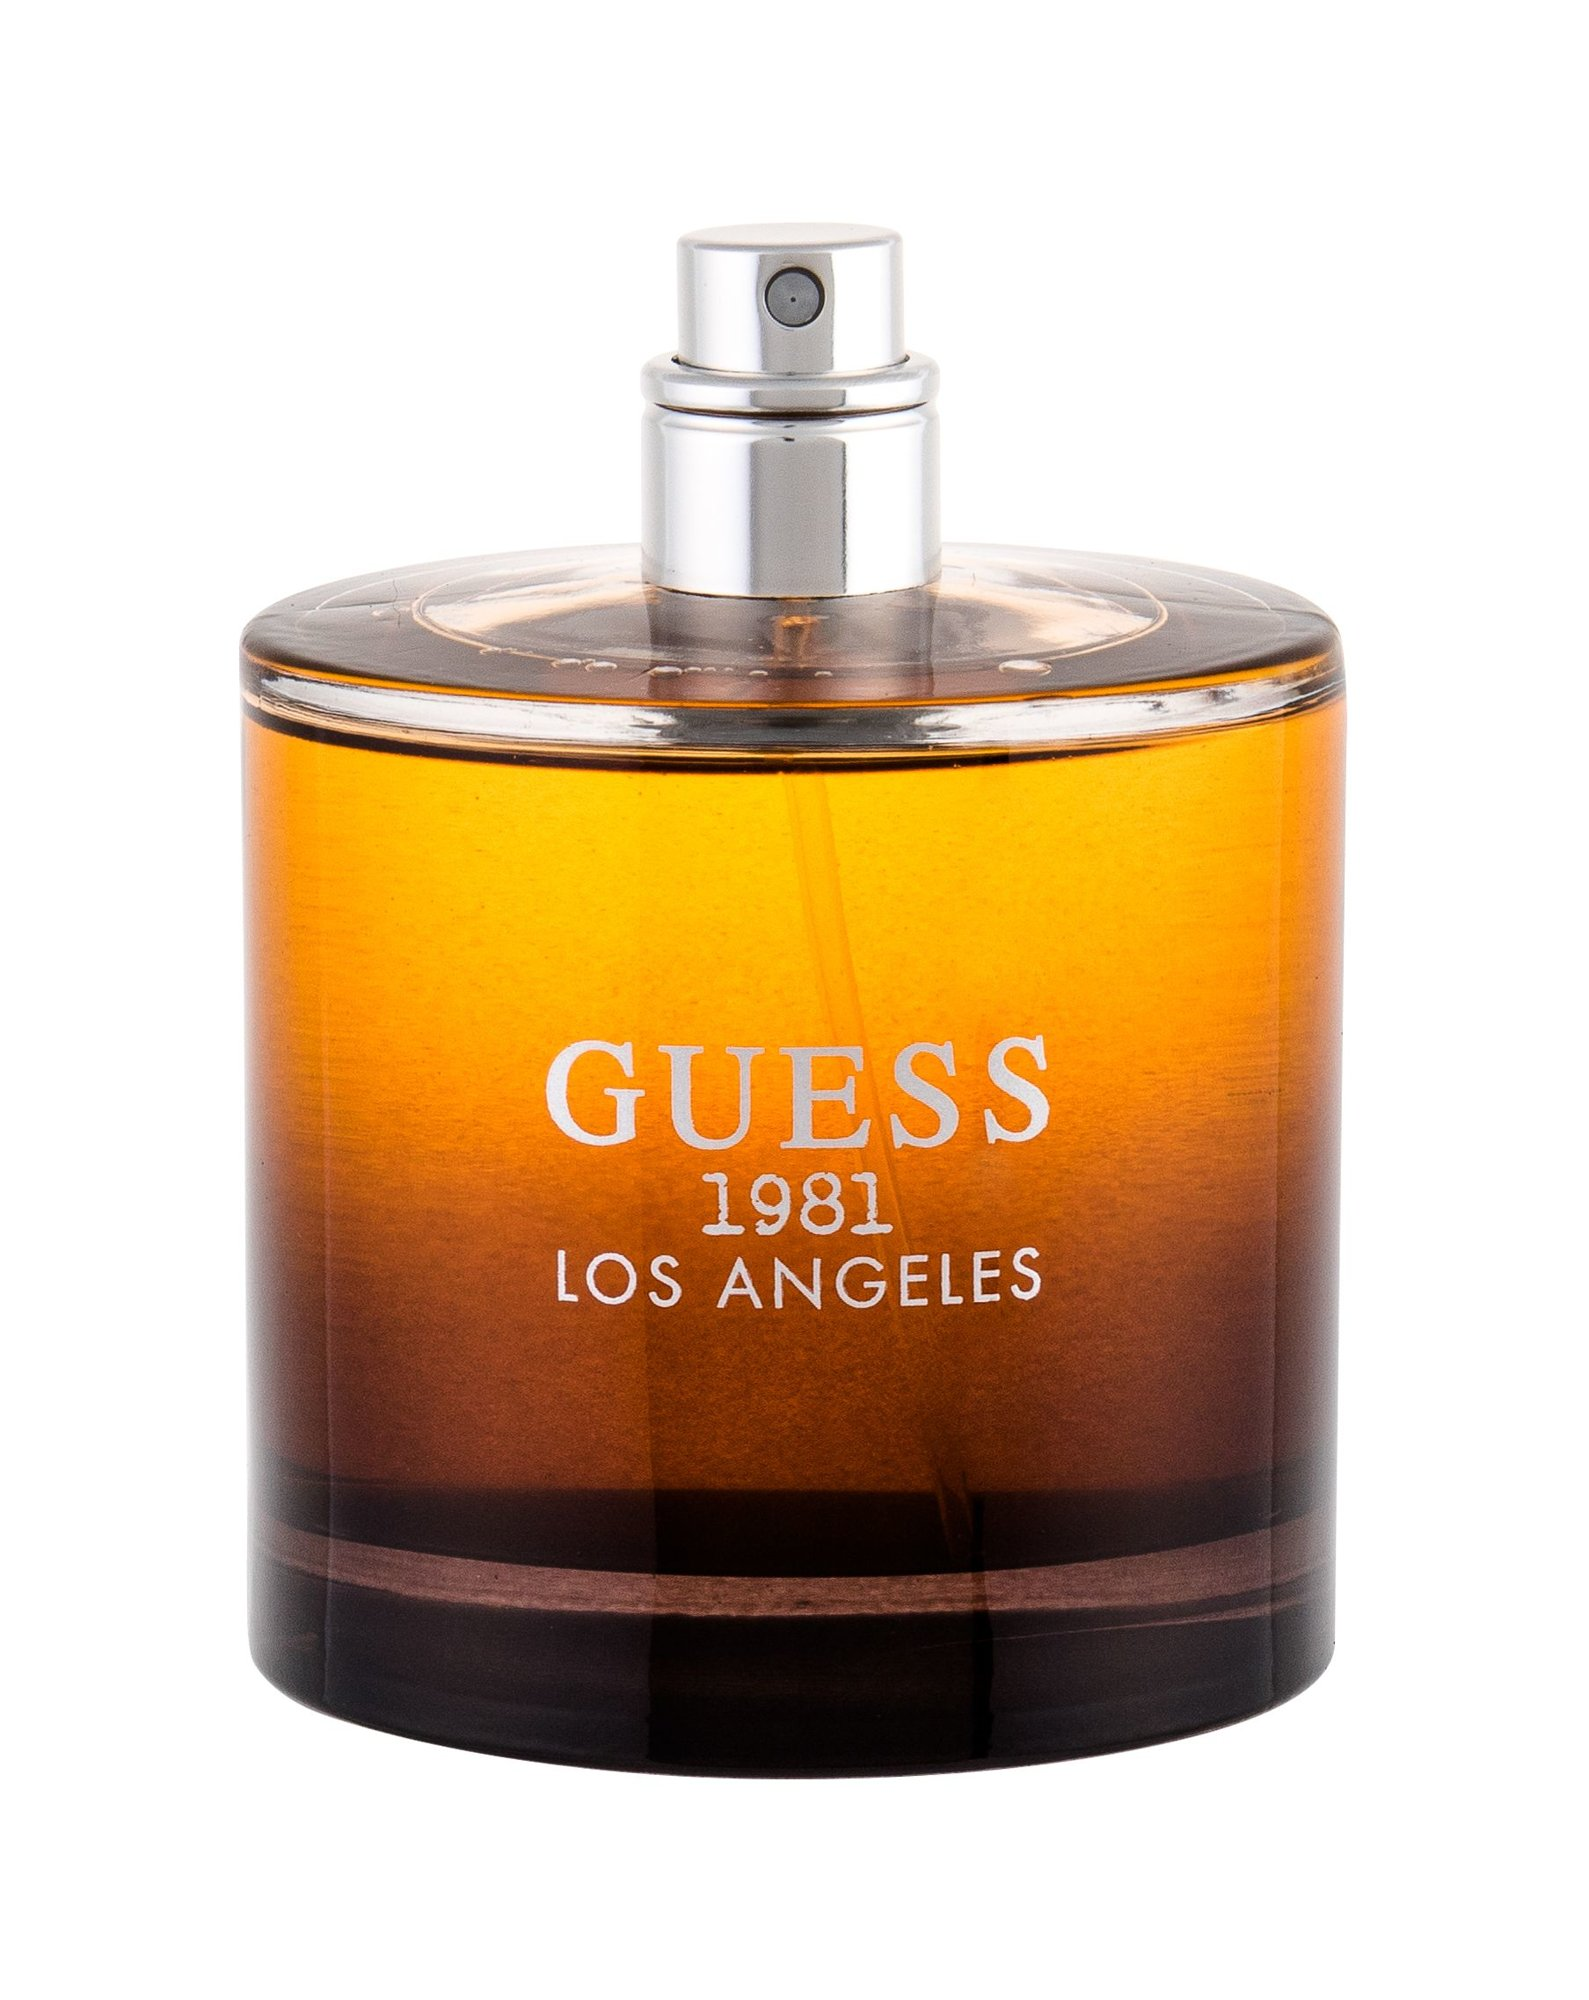 GUESS Guess 1981 Eau de Toilette 100ml